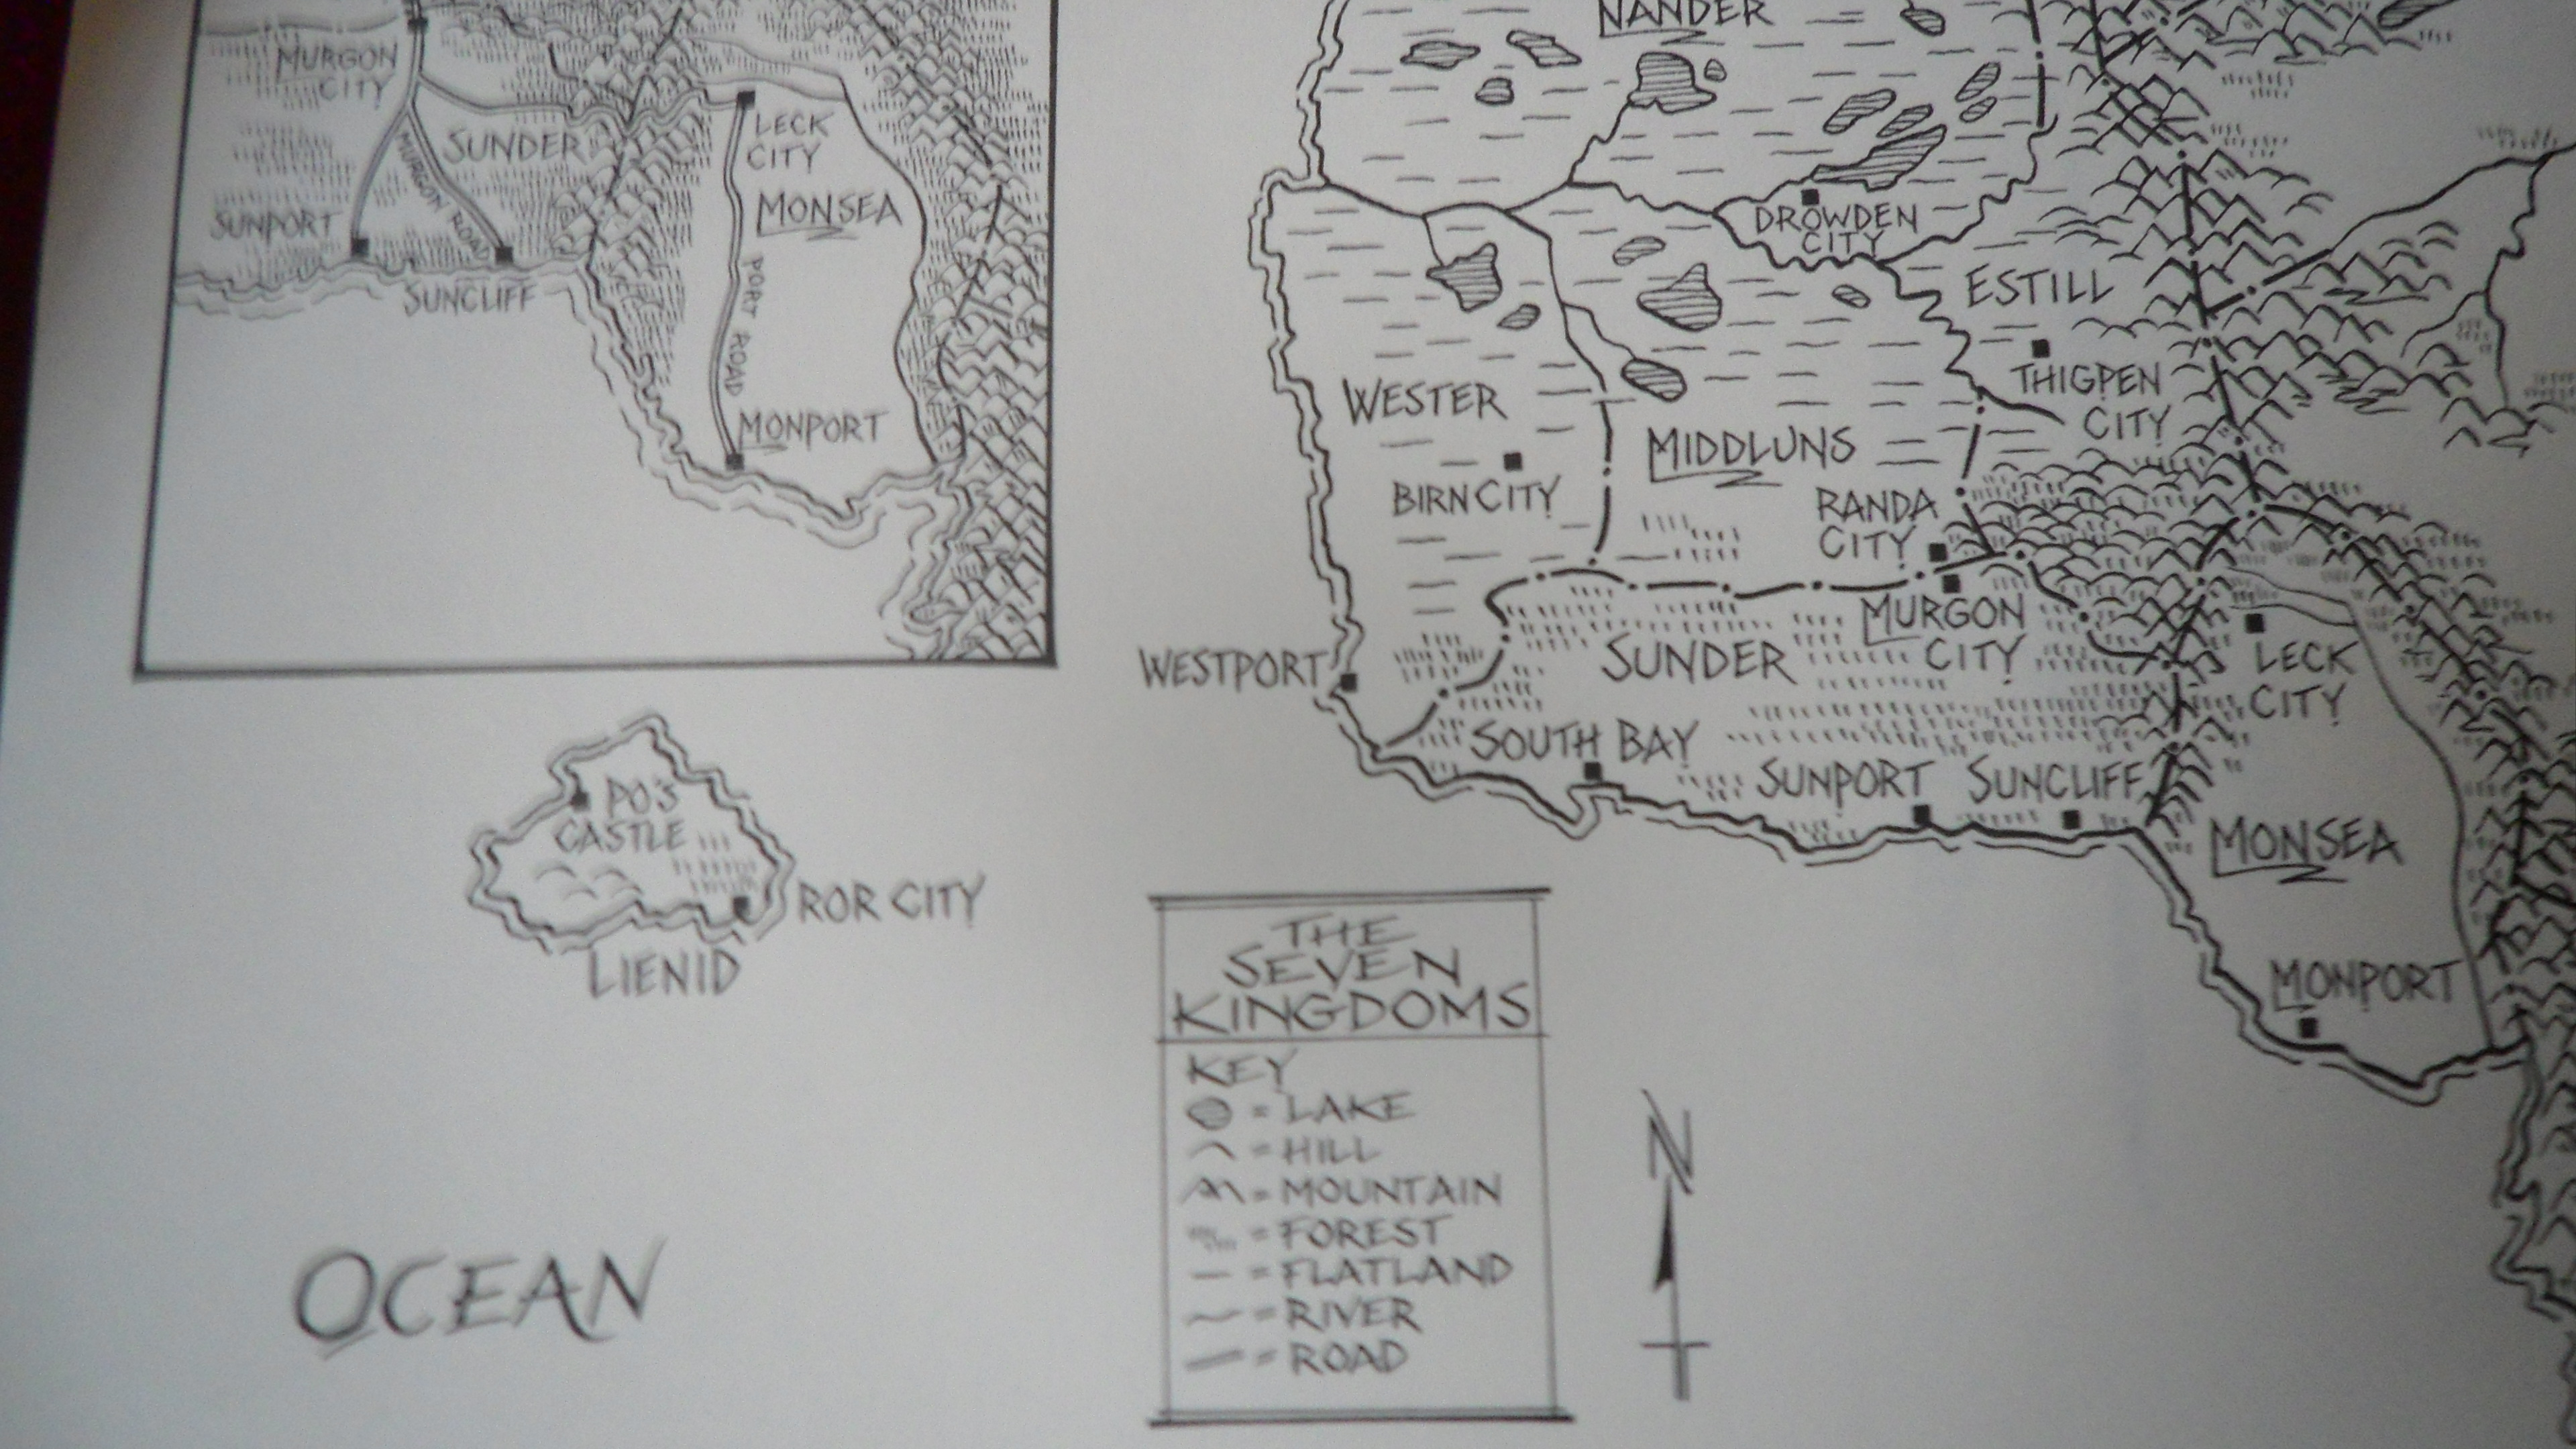 Map of the Seven Kingdoms from Graceling